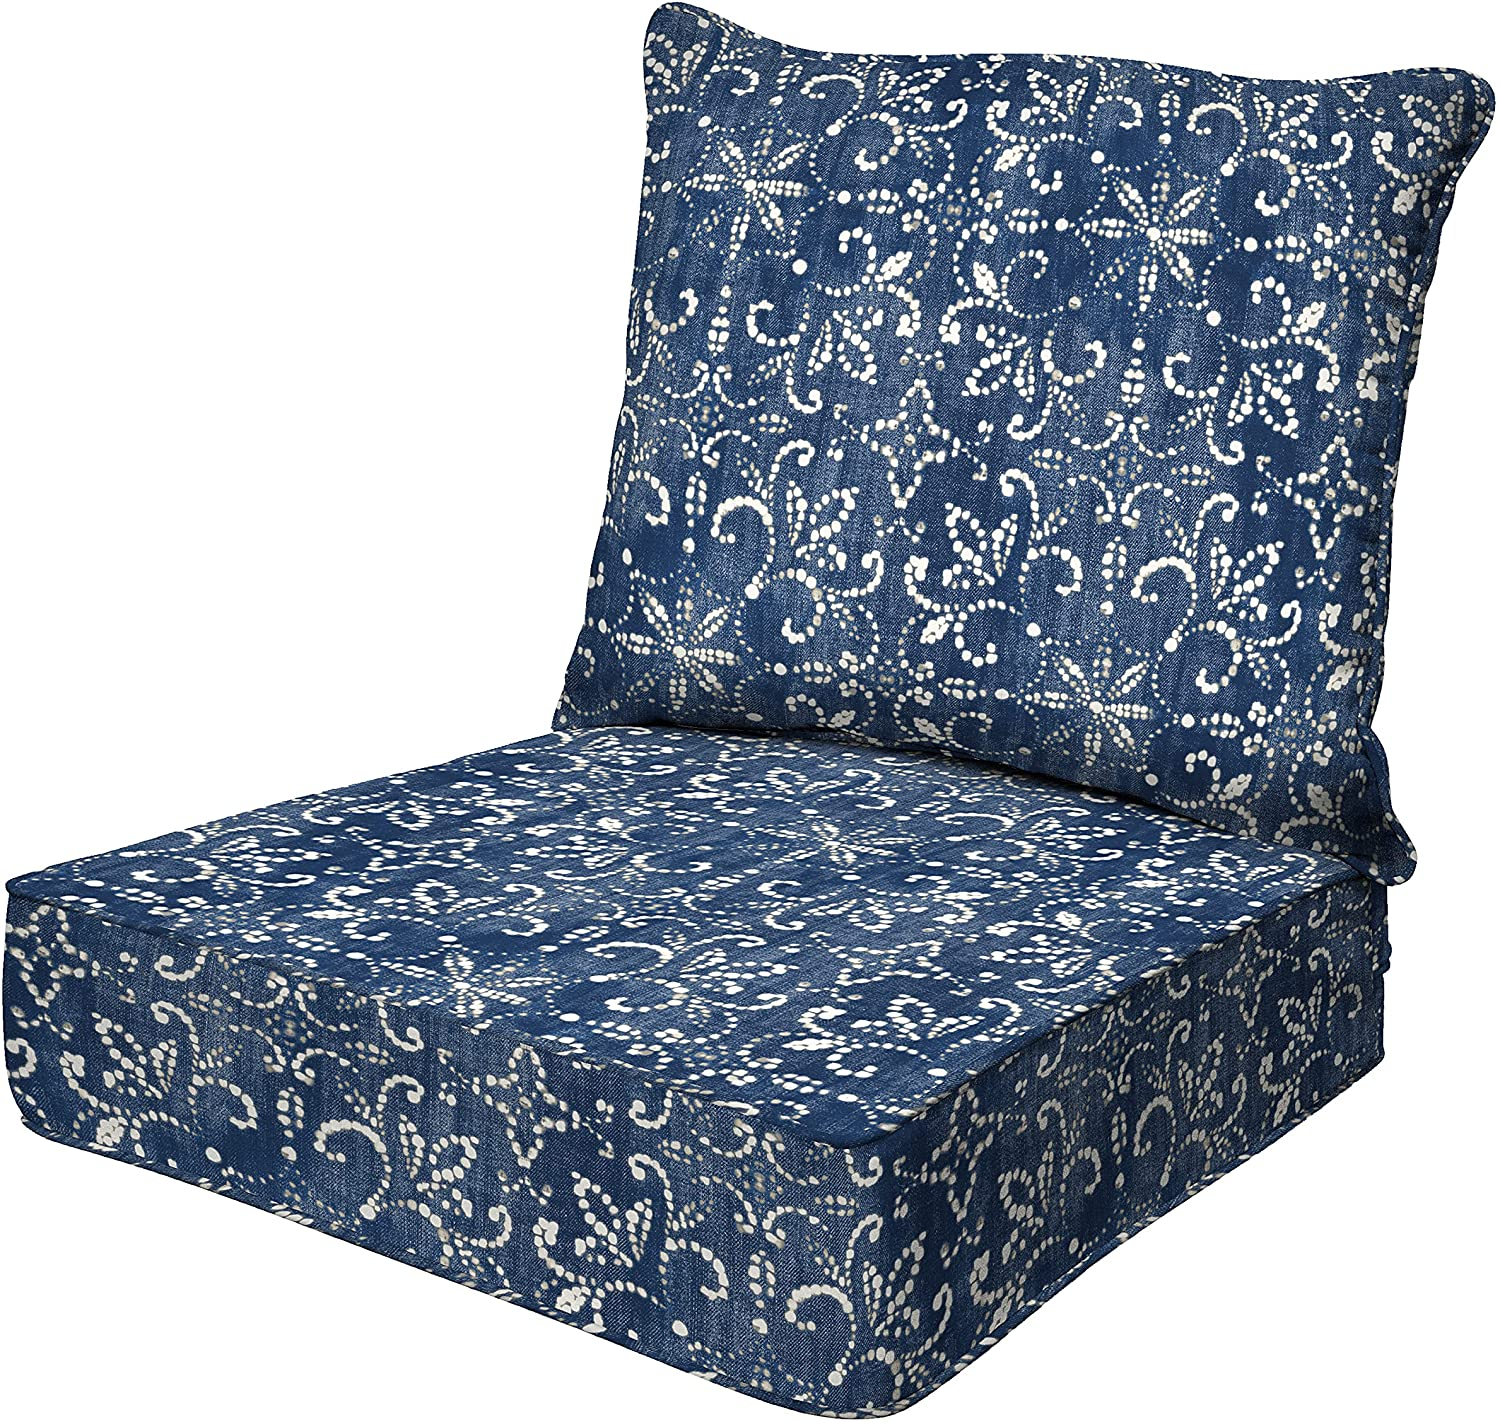 Honeycomb Indoor/Outdoor Boheme Deep Seat Chair Cushion Set: Recycled Polyester Fill, Weather Resistant Patio Cushions: Seat: 24